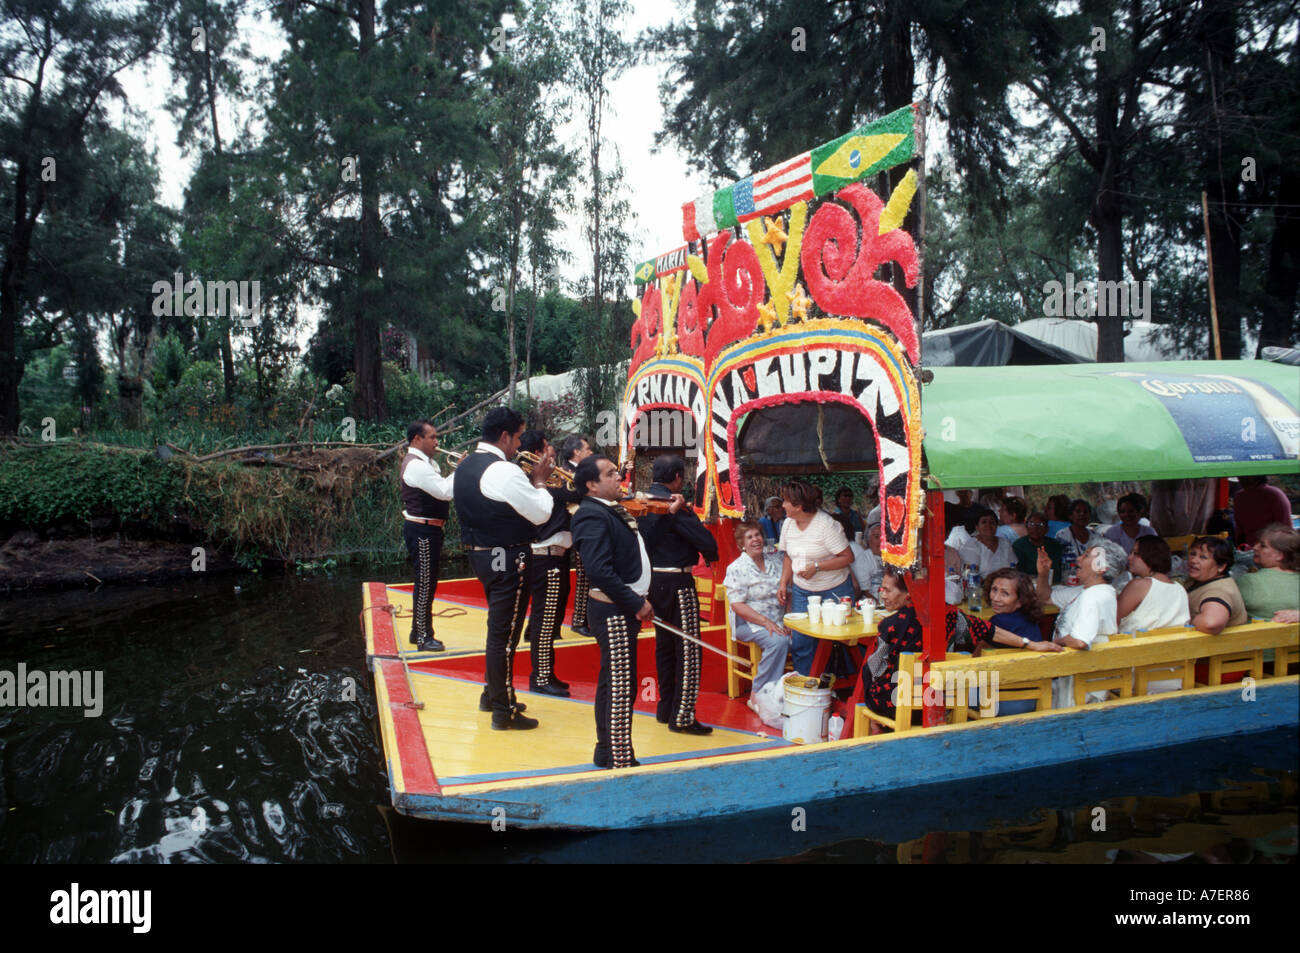 Mexico City, UNESCO patrimony site Xochimilco and trinjeras, poled around the canals with tourists - Stock Image